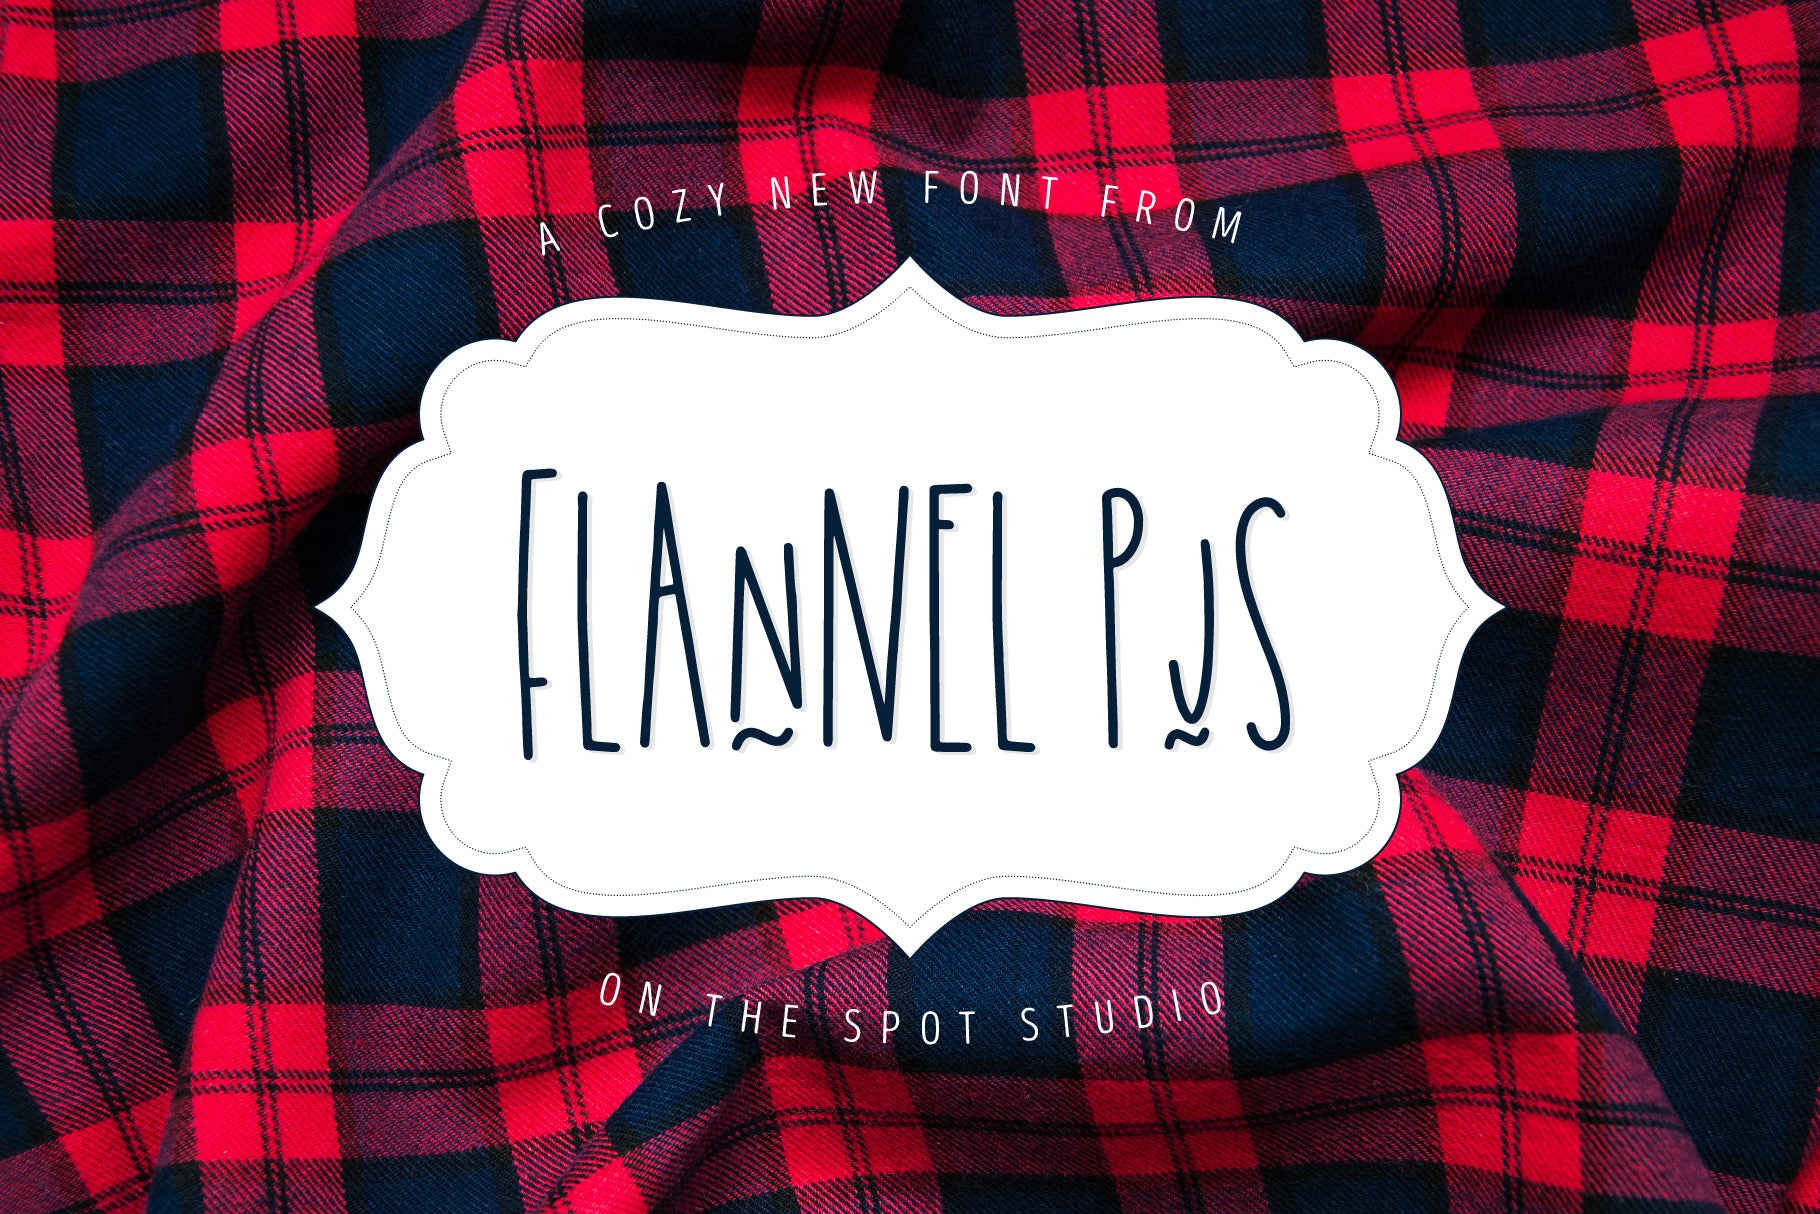 Flannel PJs - $5 TODAY ONLY